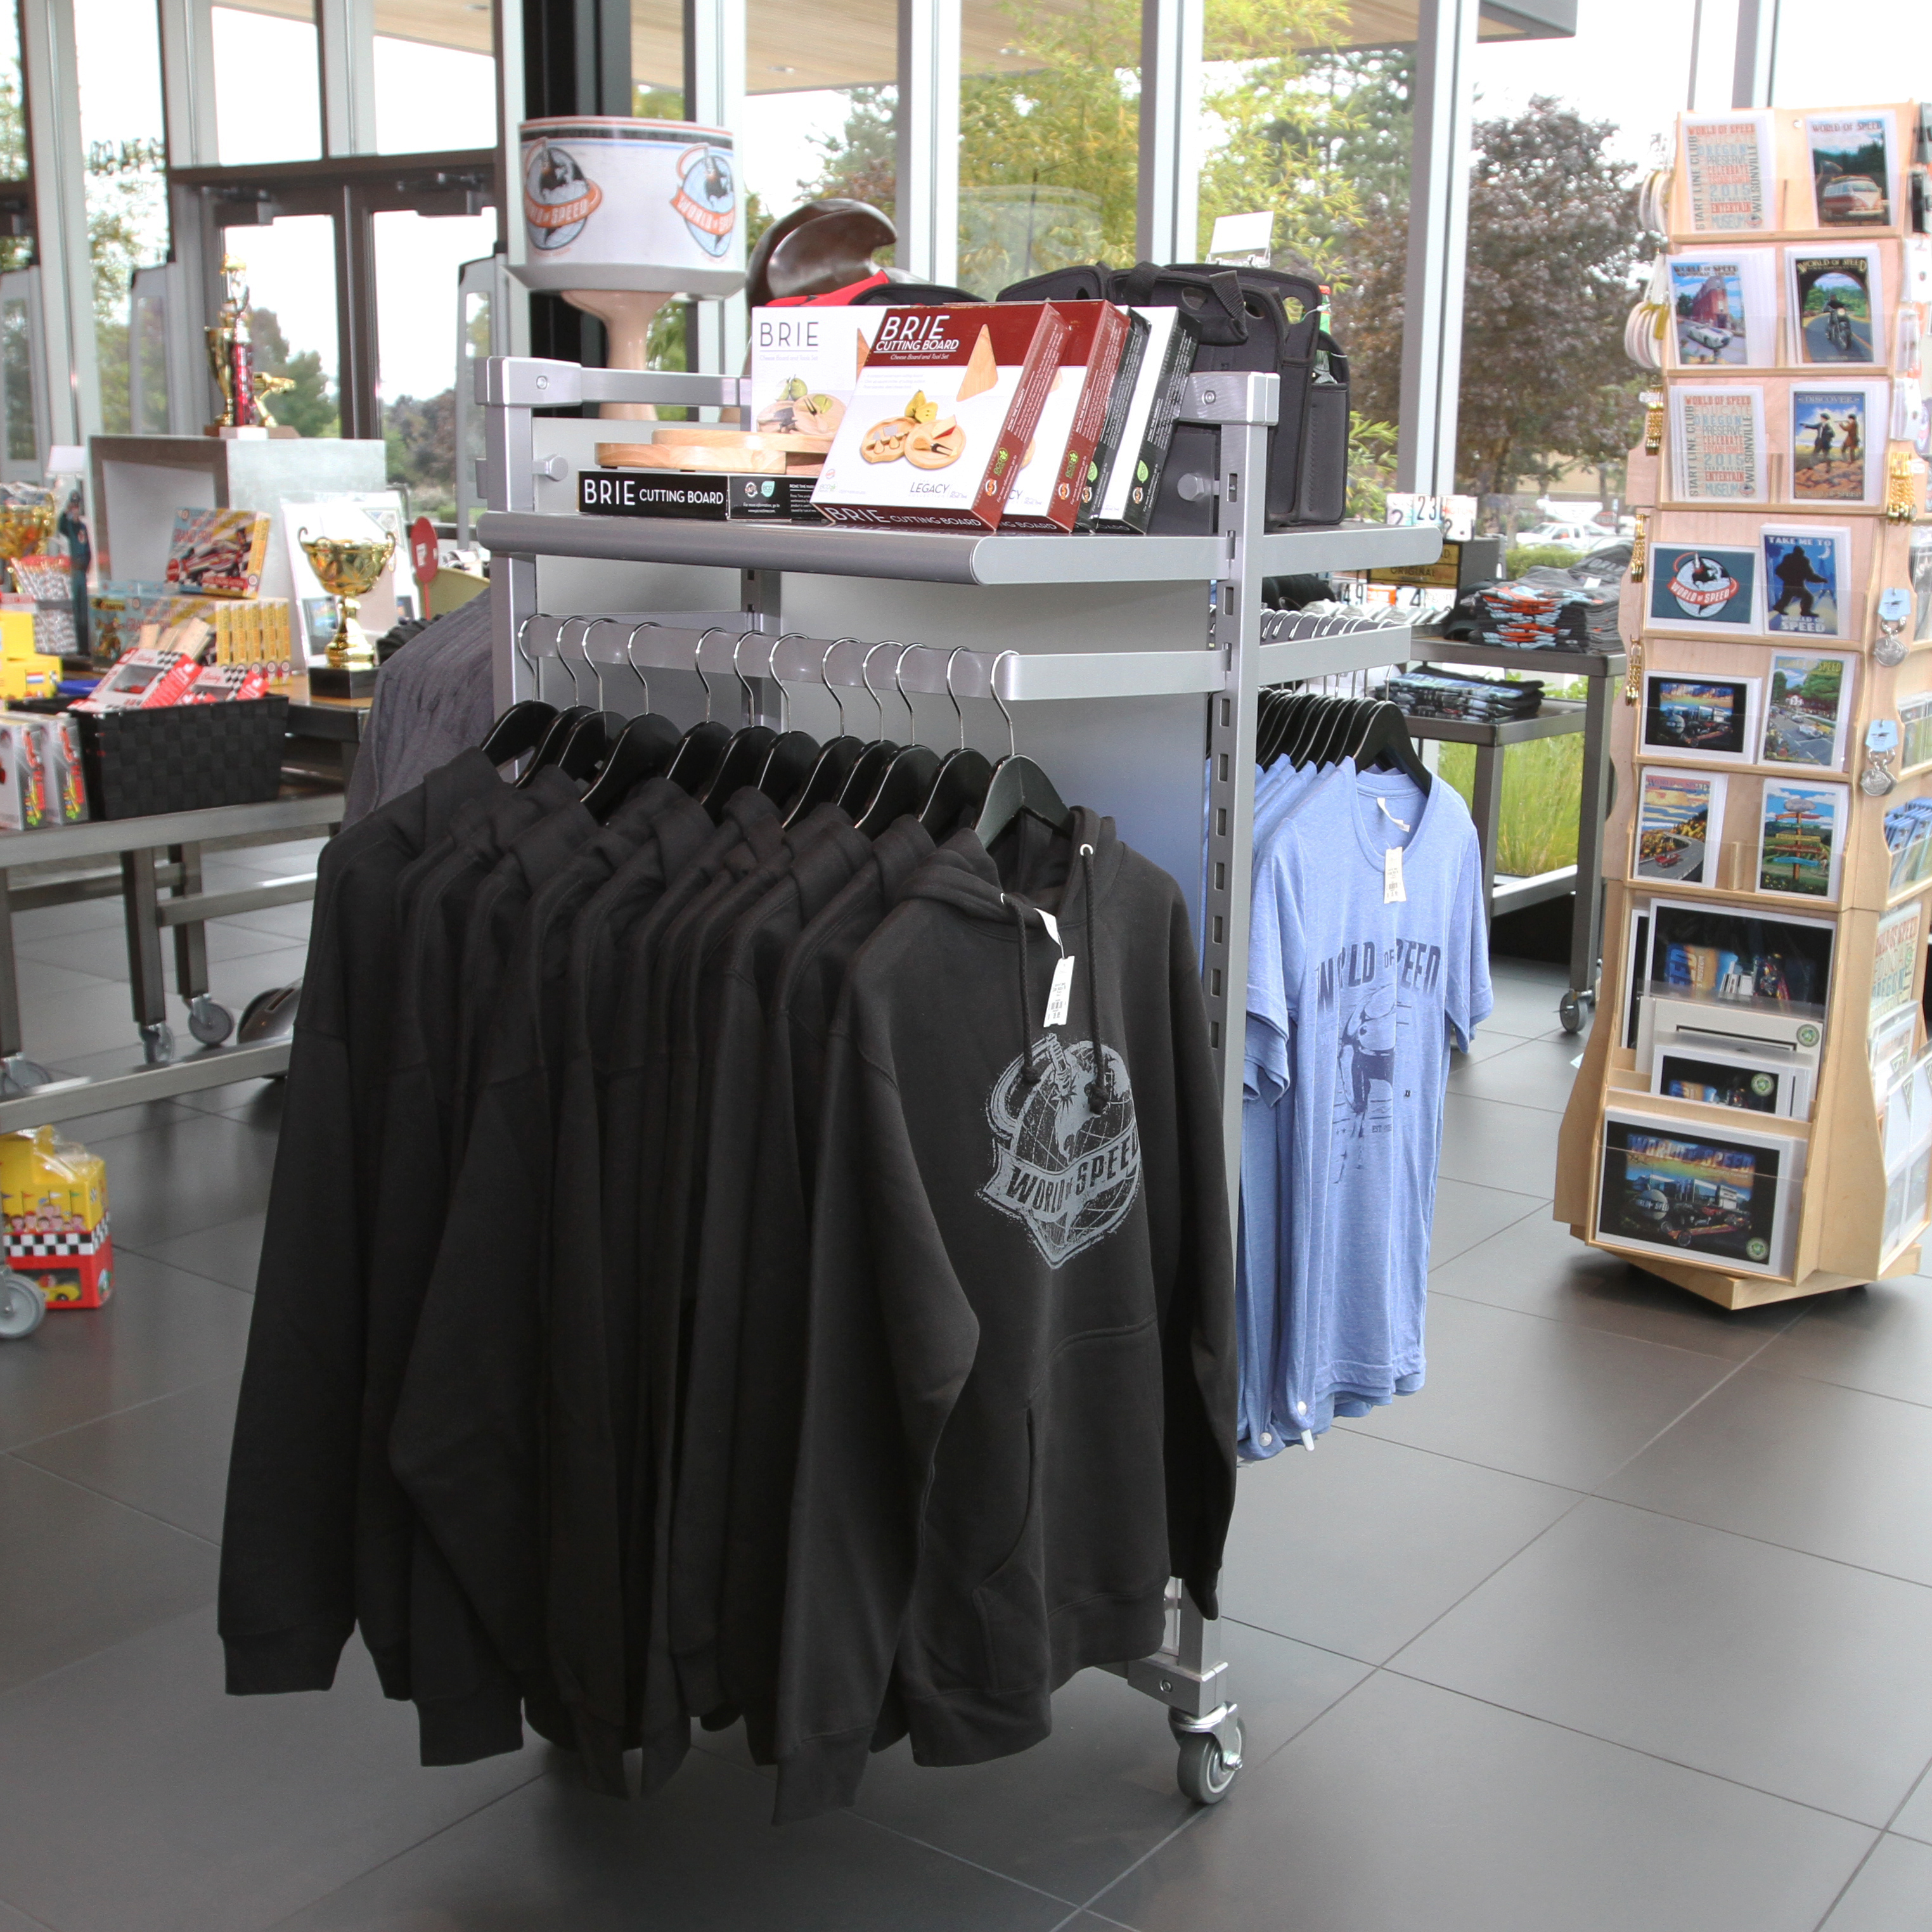 3 way displays how to home wiring diagram burnside frame retail apparel racks by grand